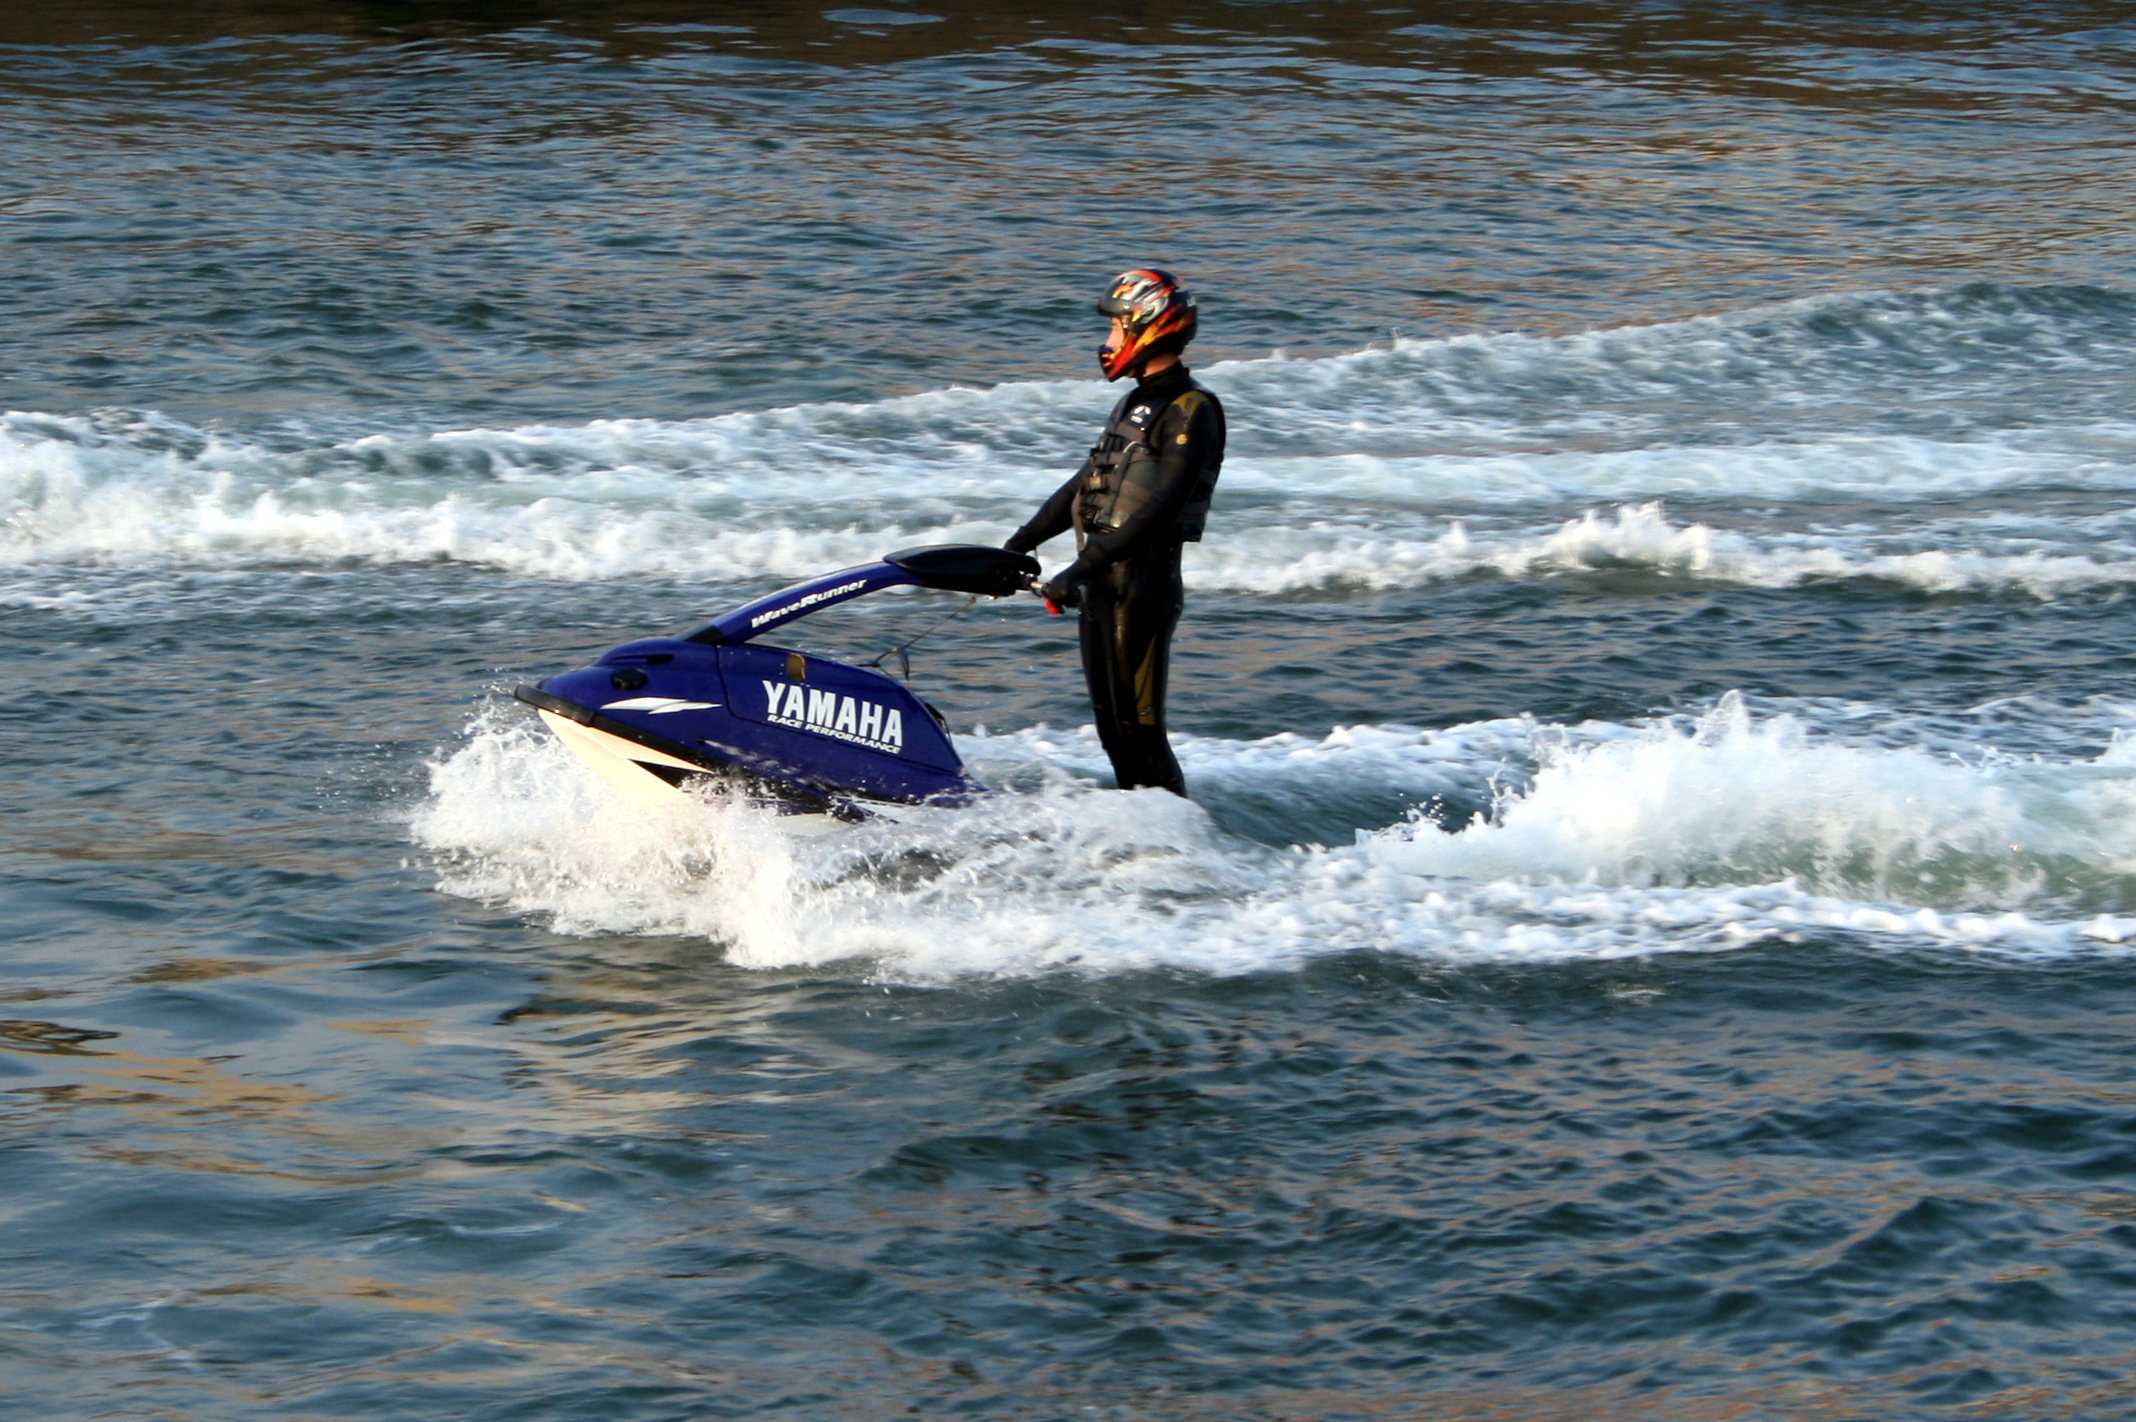 jet ski Jetski safaris based in poole and bournemouth offers various watersports activities through jet ski hire, jet ski training, jet ski tours, jet ski lessons and powerboat rides providing the ultimate jet ski experience if you are looking for things to do in dorset.